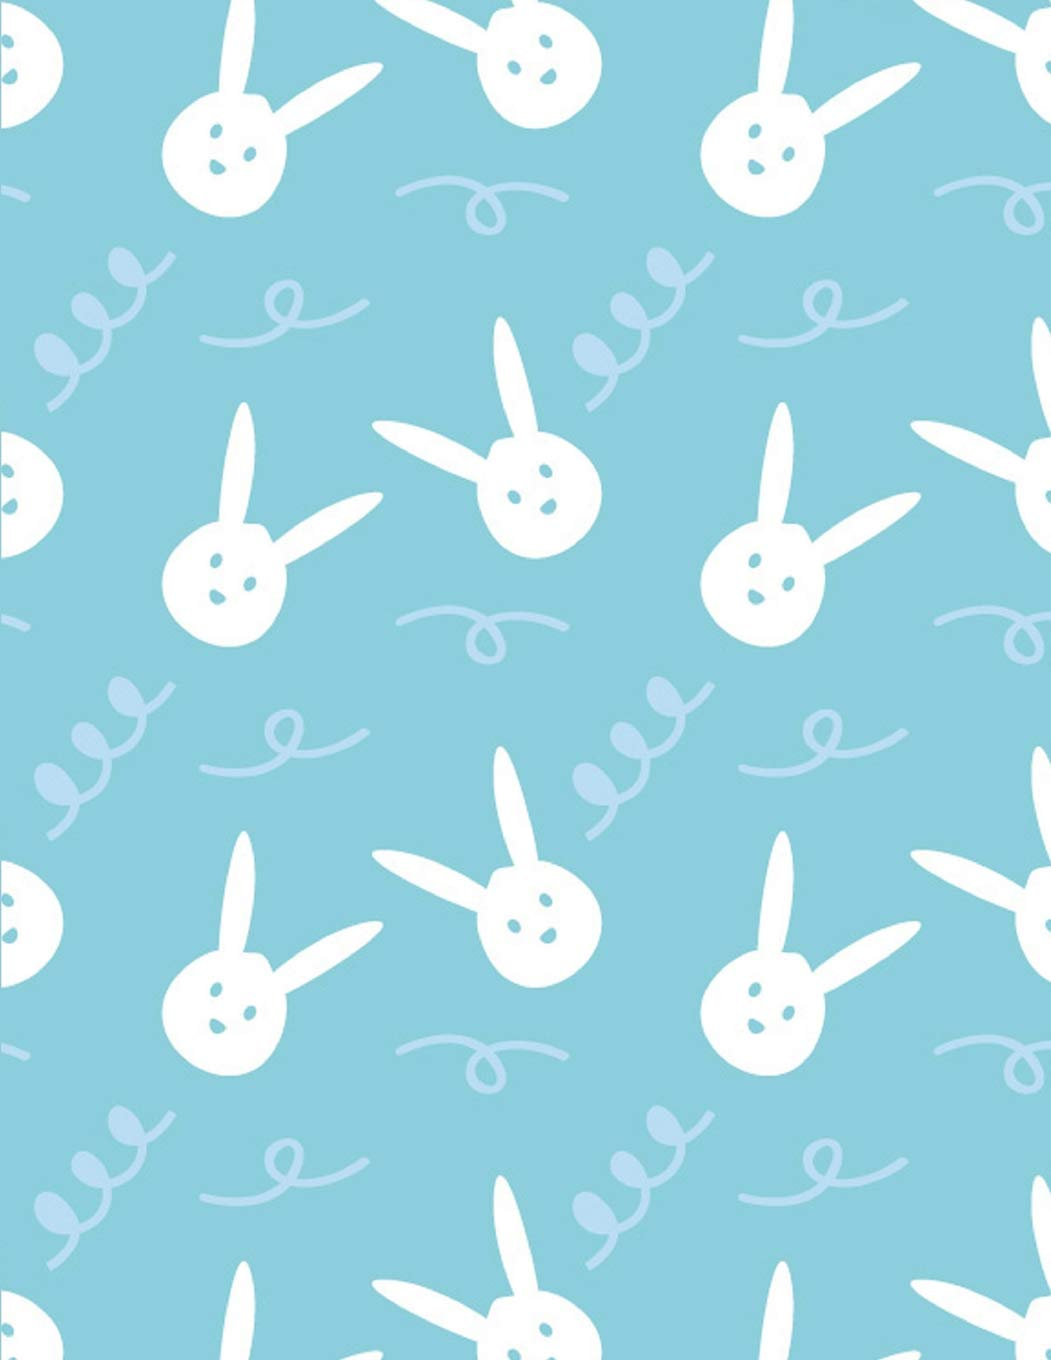 Read Online Bunny Notebook: Bunny Journal Book Ruled Lined Page Writing Women Girl Sweet Cute Animal Rabbit Diary Easter Record Plan Pet Note Pad Little Baby Blue ... Large 8.5 x 11 Inches, Paperback) (Volume 8) PDF